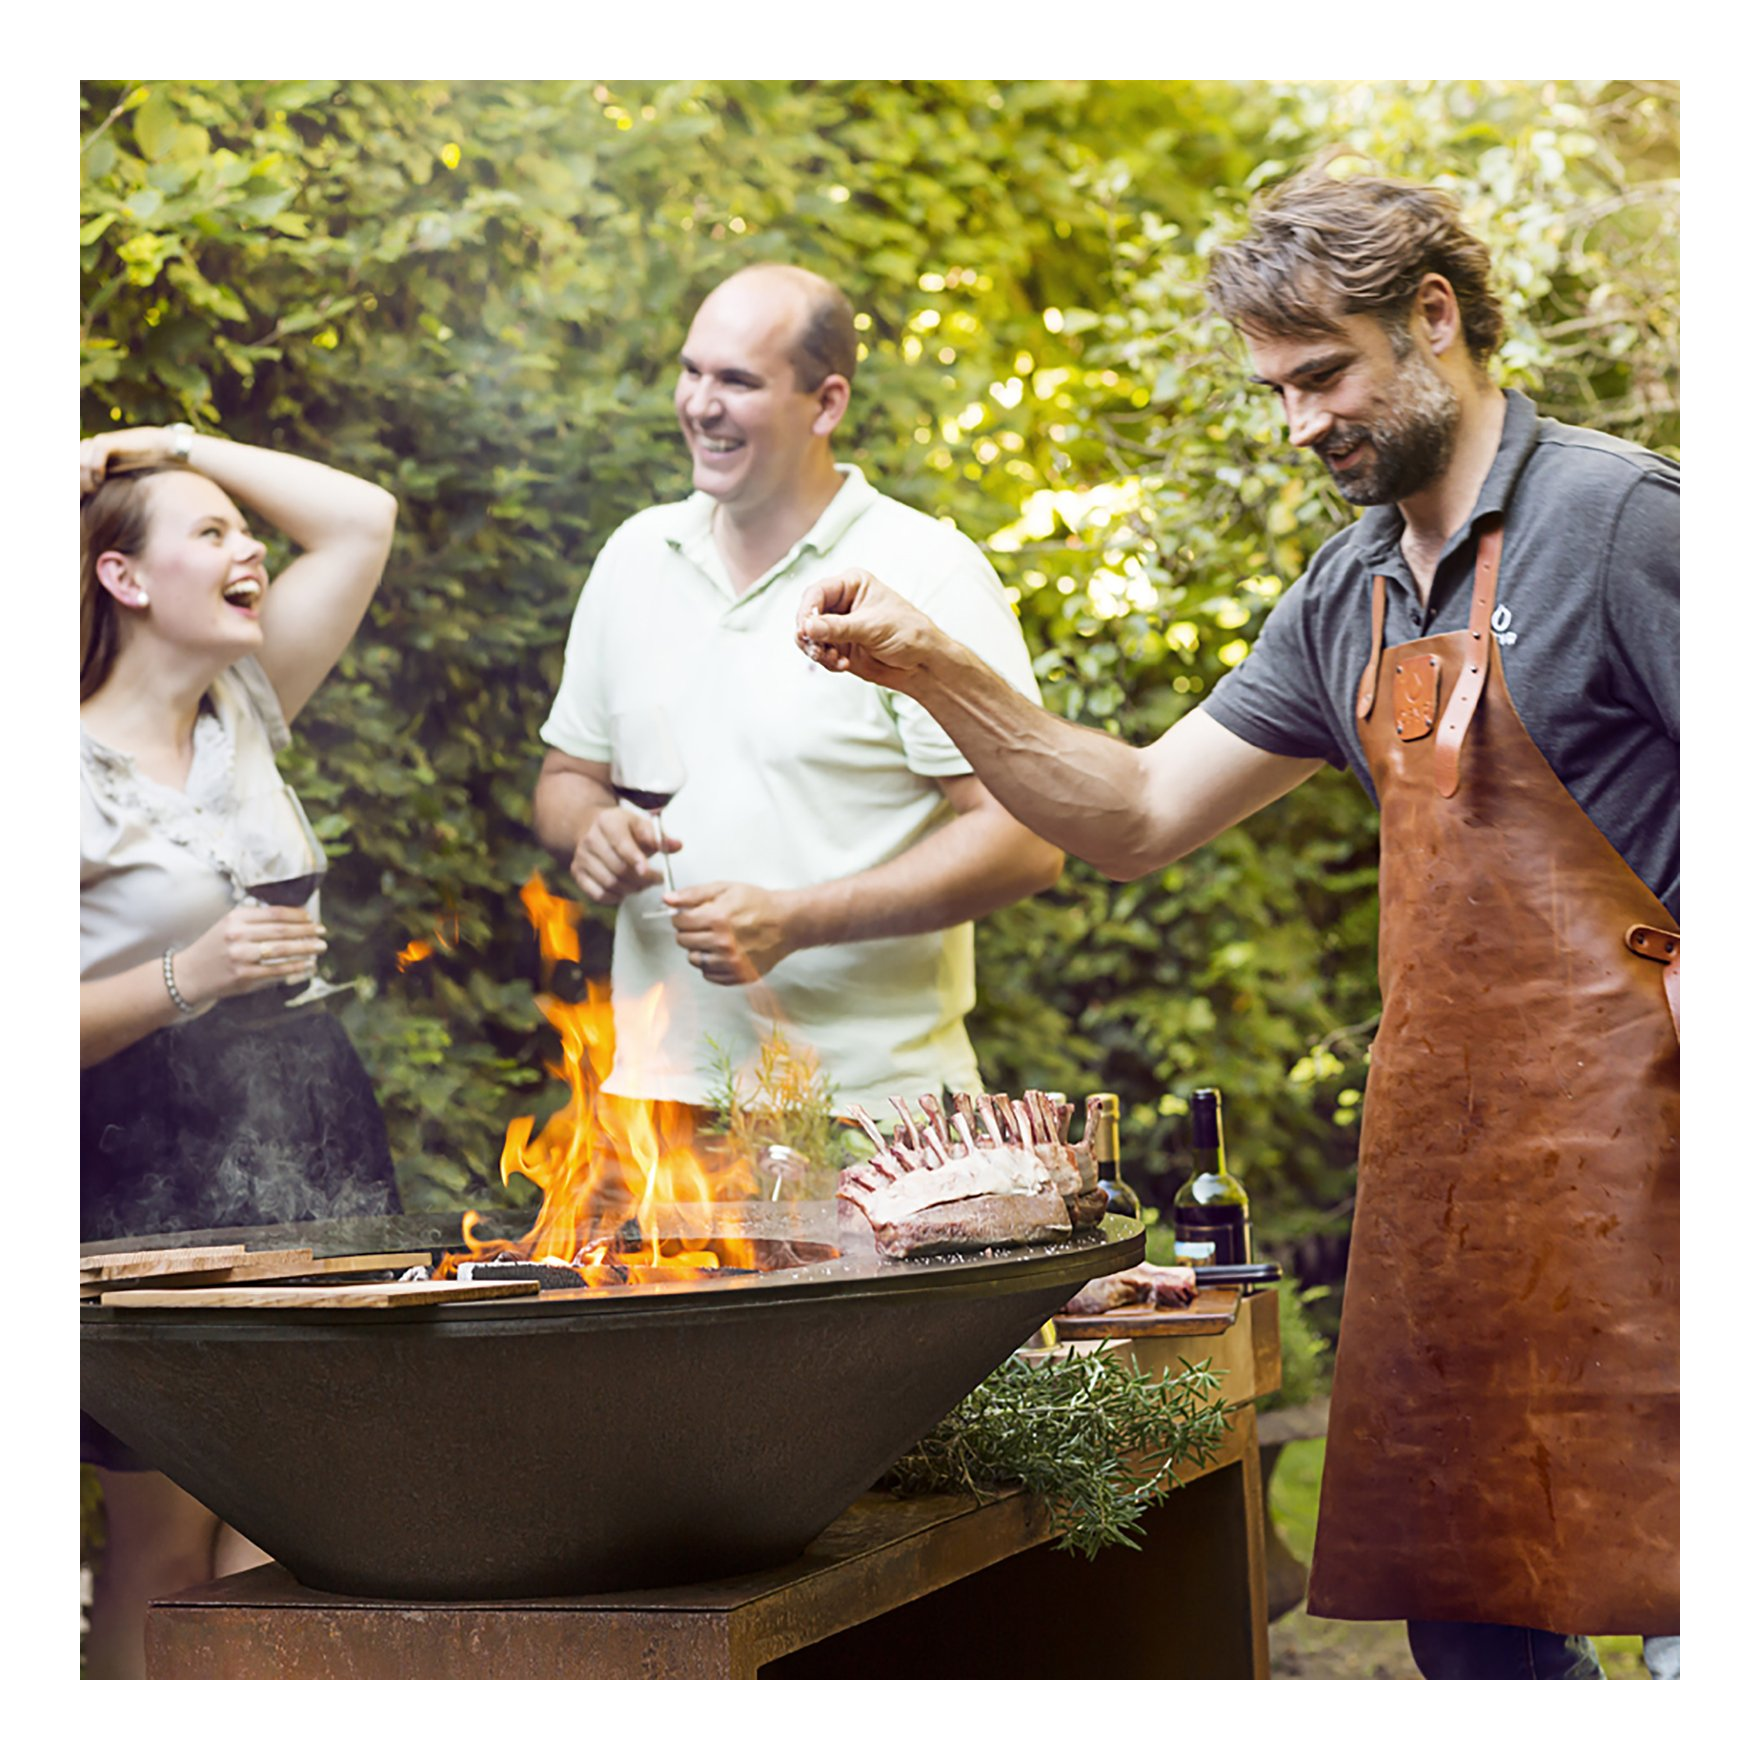 Several guests surround a cook who is grilling over a fire pit grill